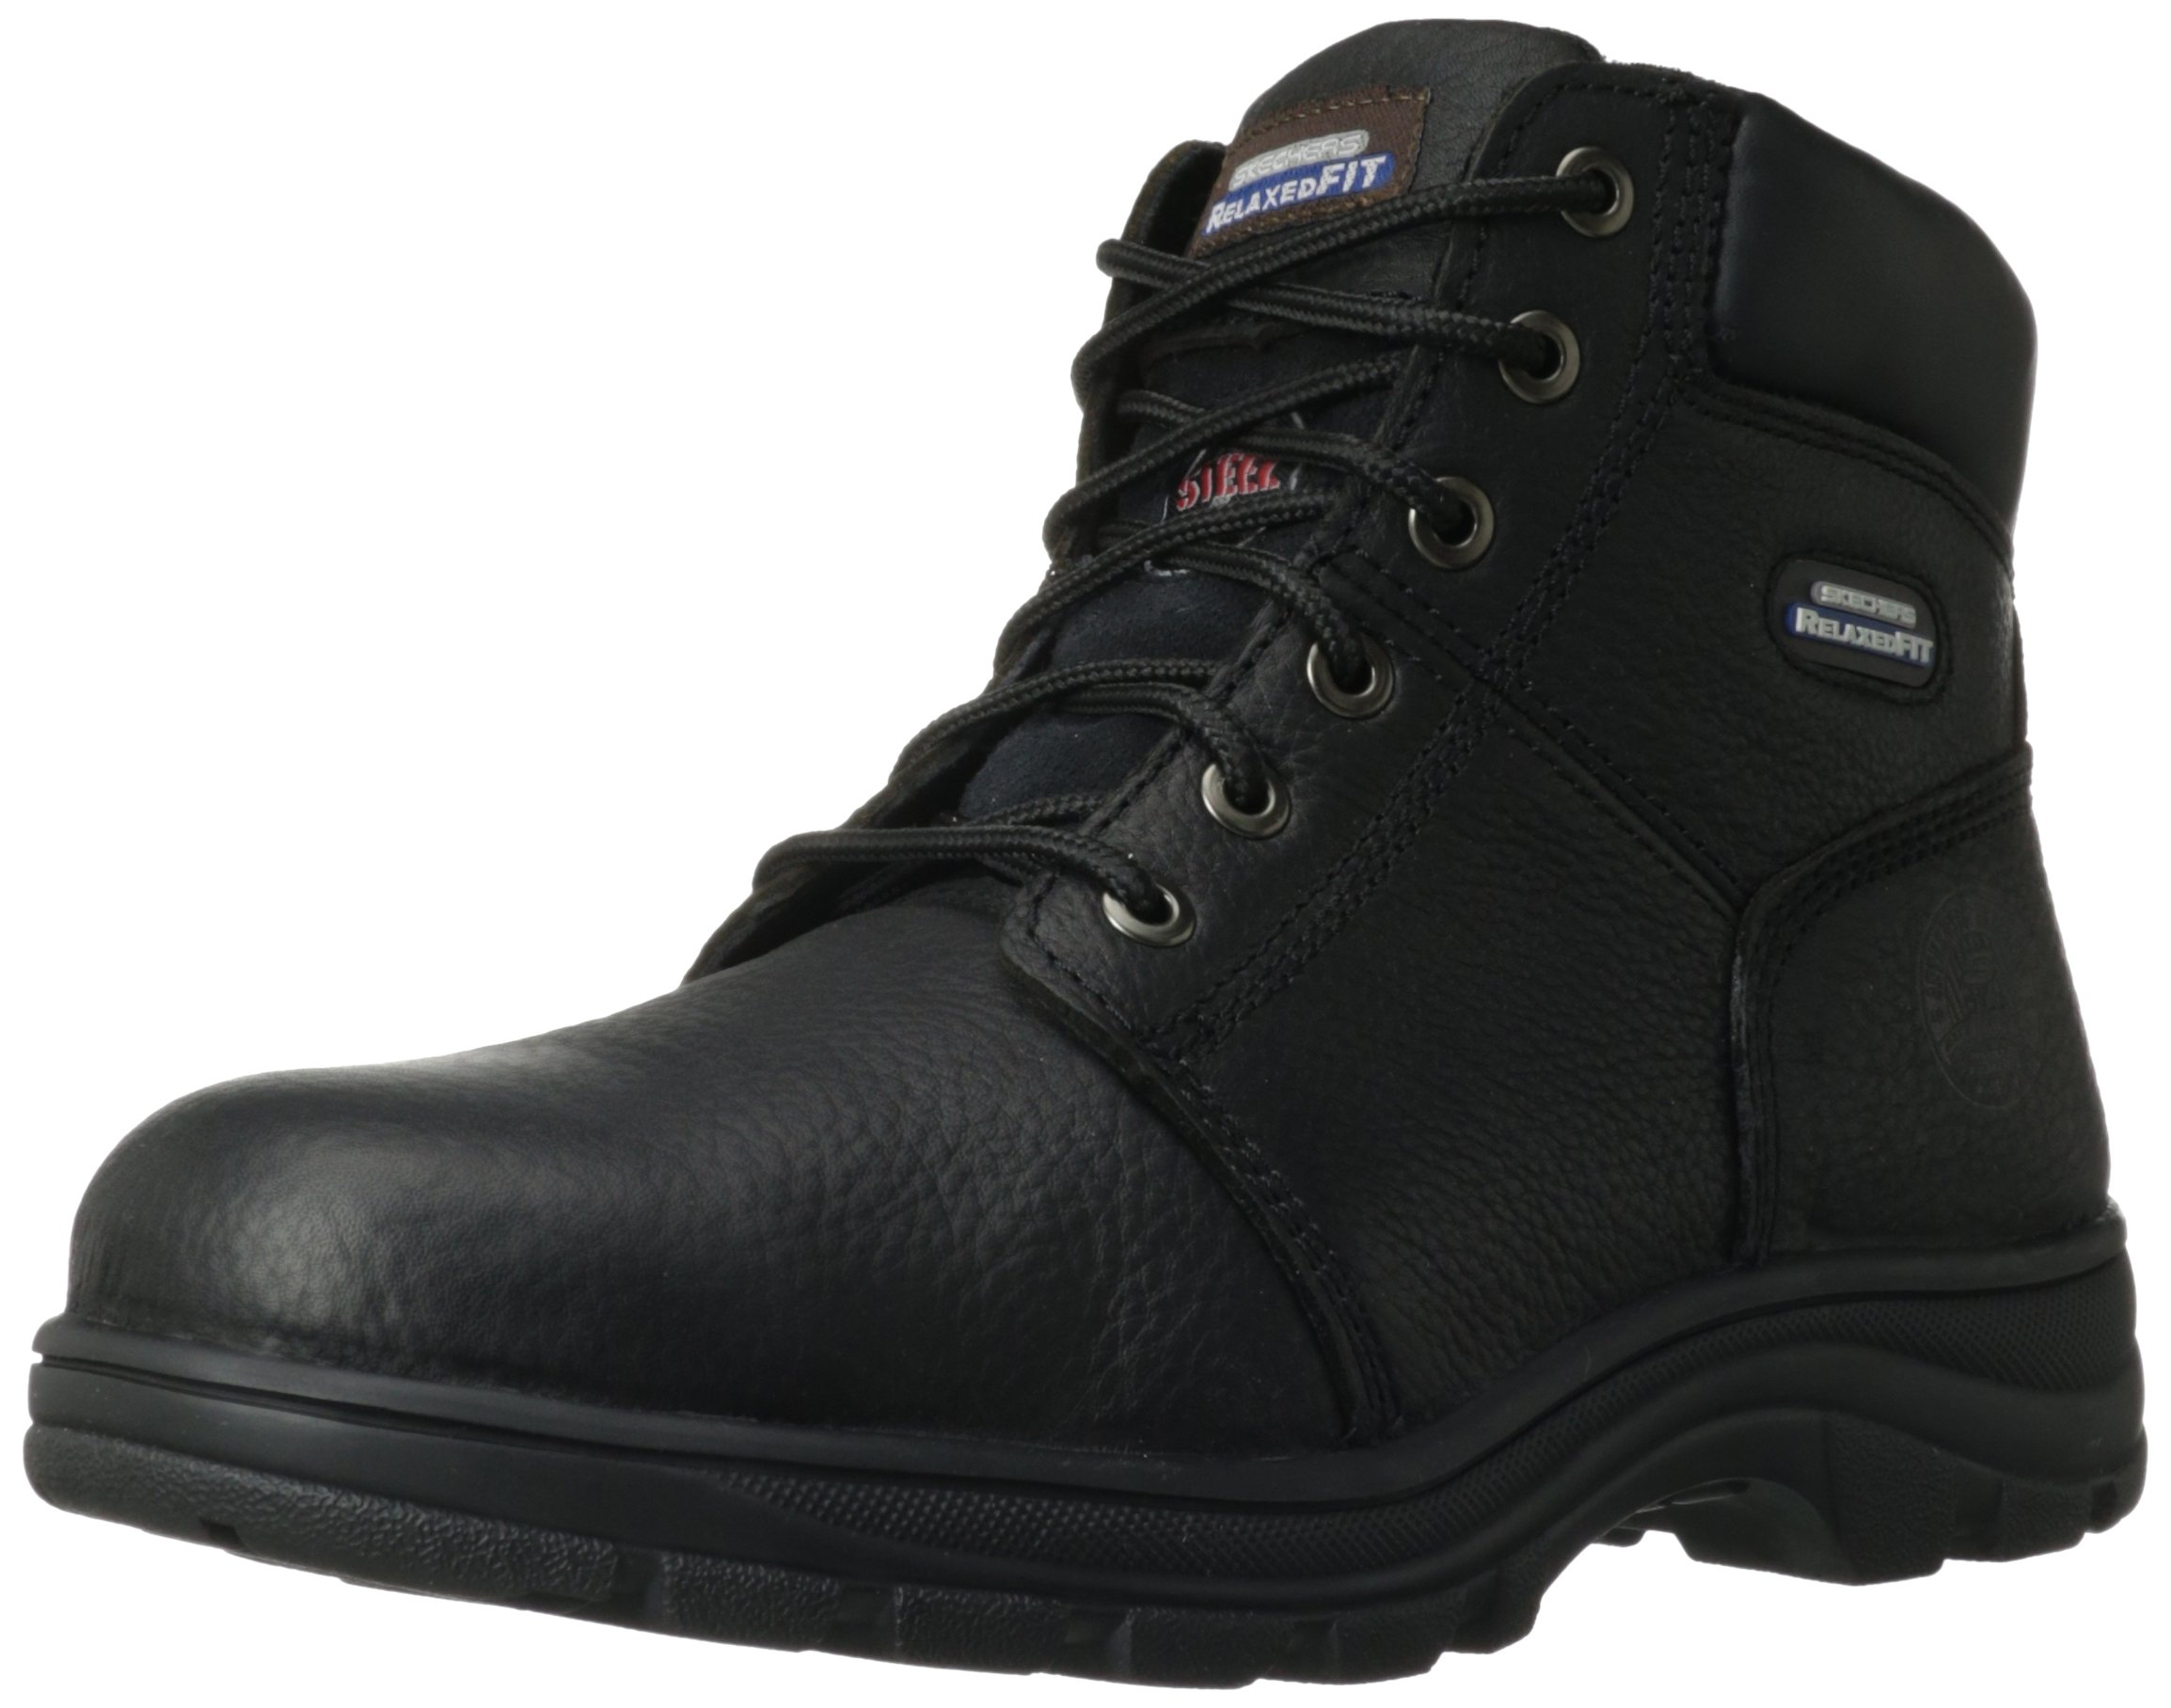 Skechers for Work Men's Workshire Relaxed Fit Work Steel Toe Boot,Black,12 M US by Skechers